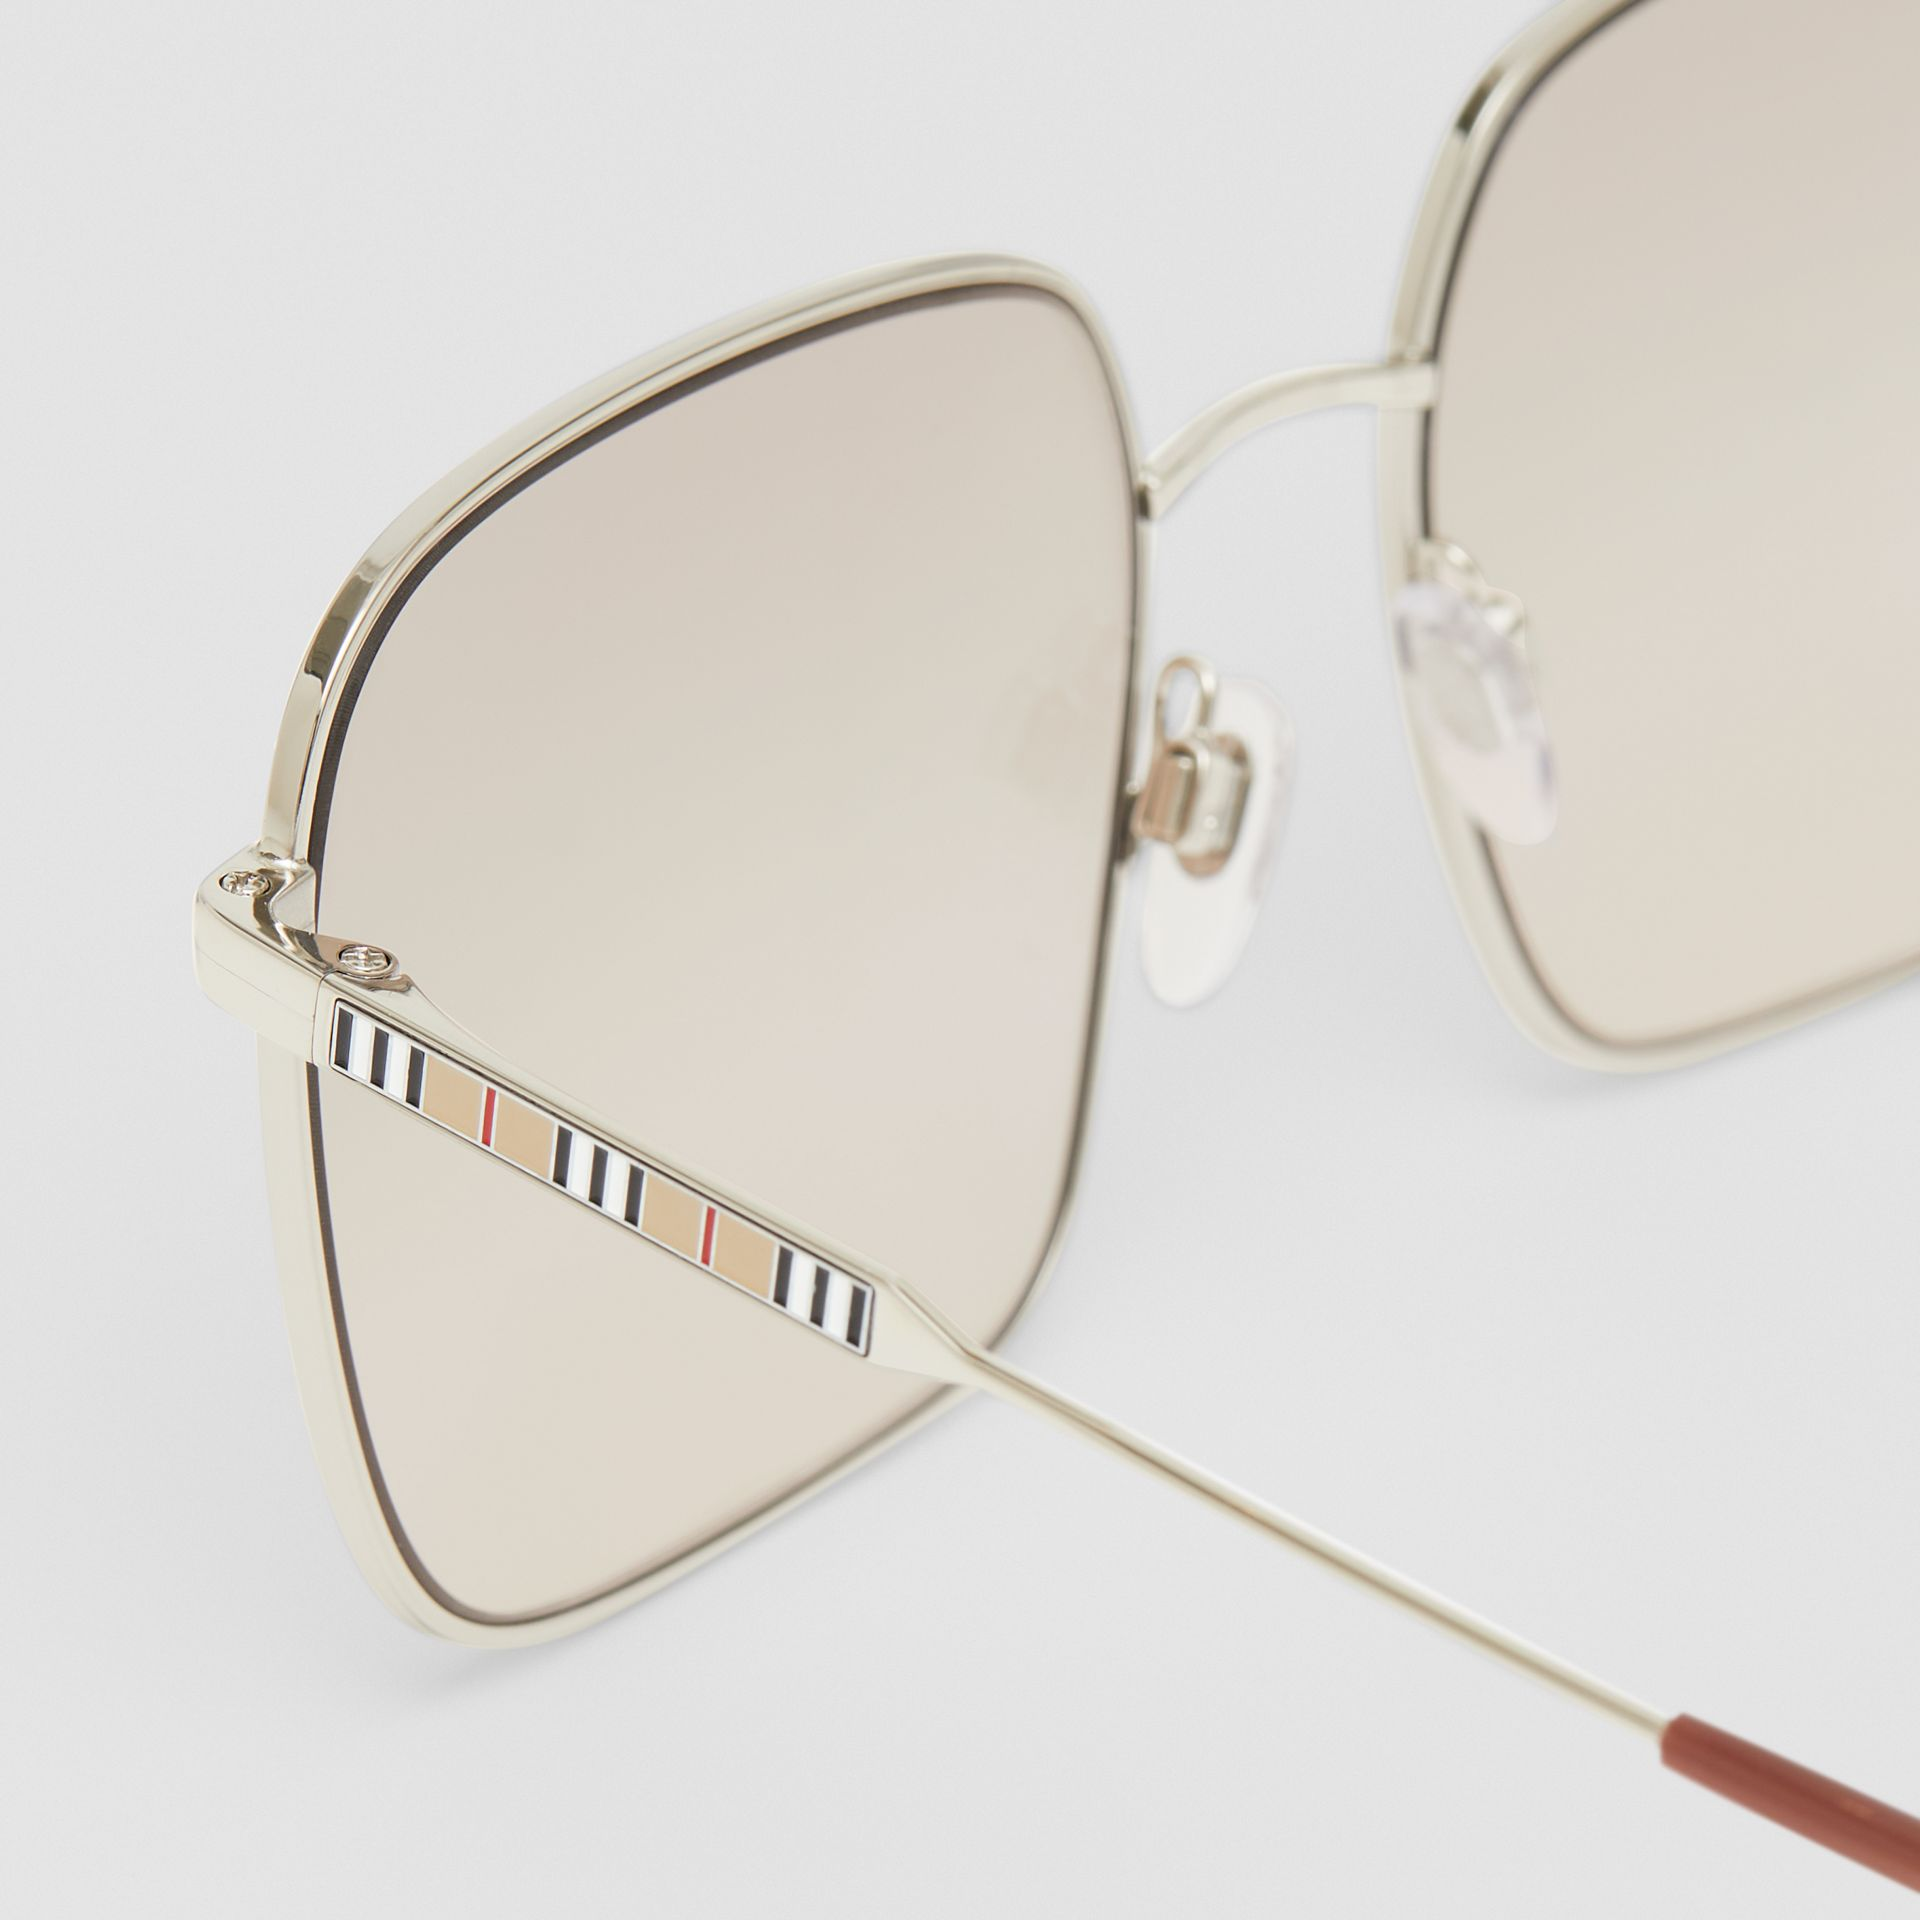 Oversized Square Frame Sunglasses in Nude Pink - Women | Burberry - gallery image 1